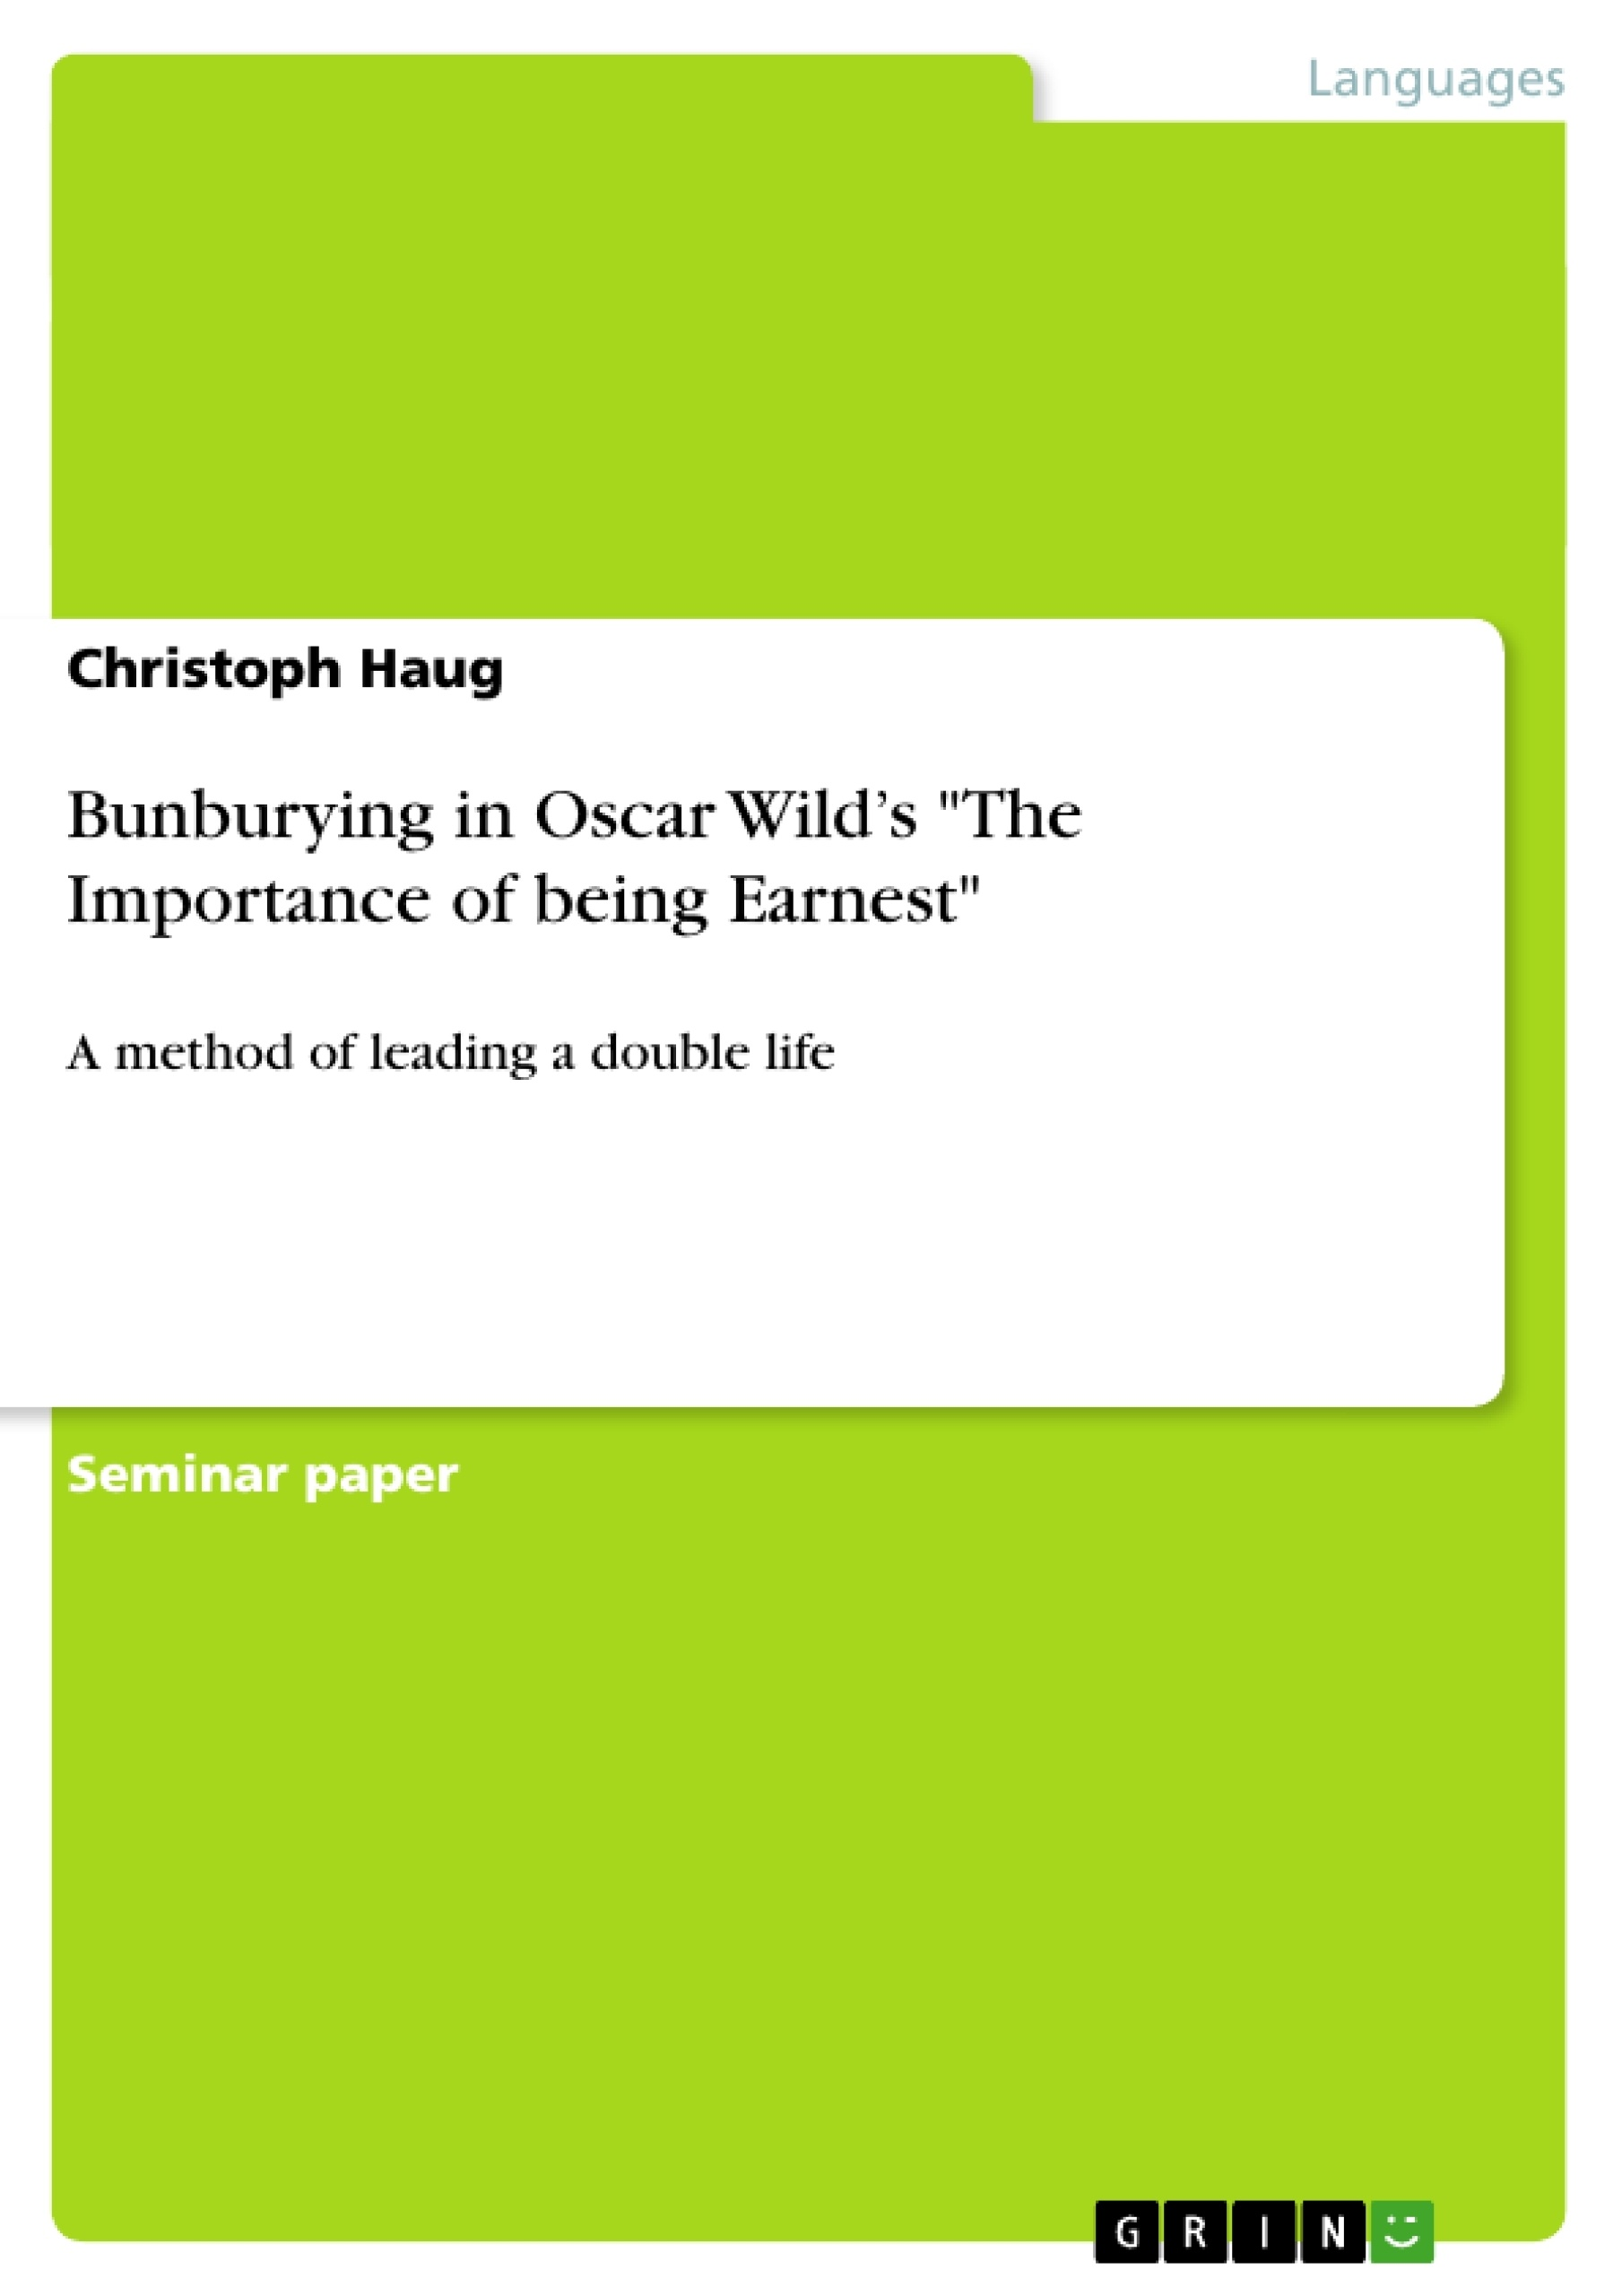 """Title: Bunburying in Oscar Wild's """"The Importance of being Earnest"""""""